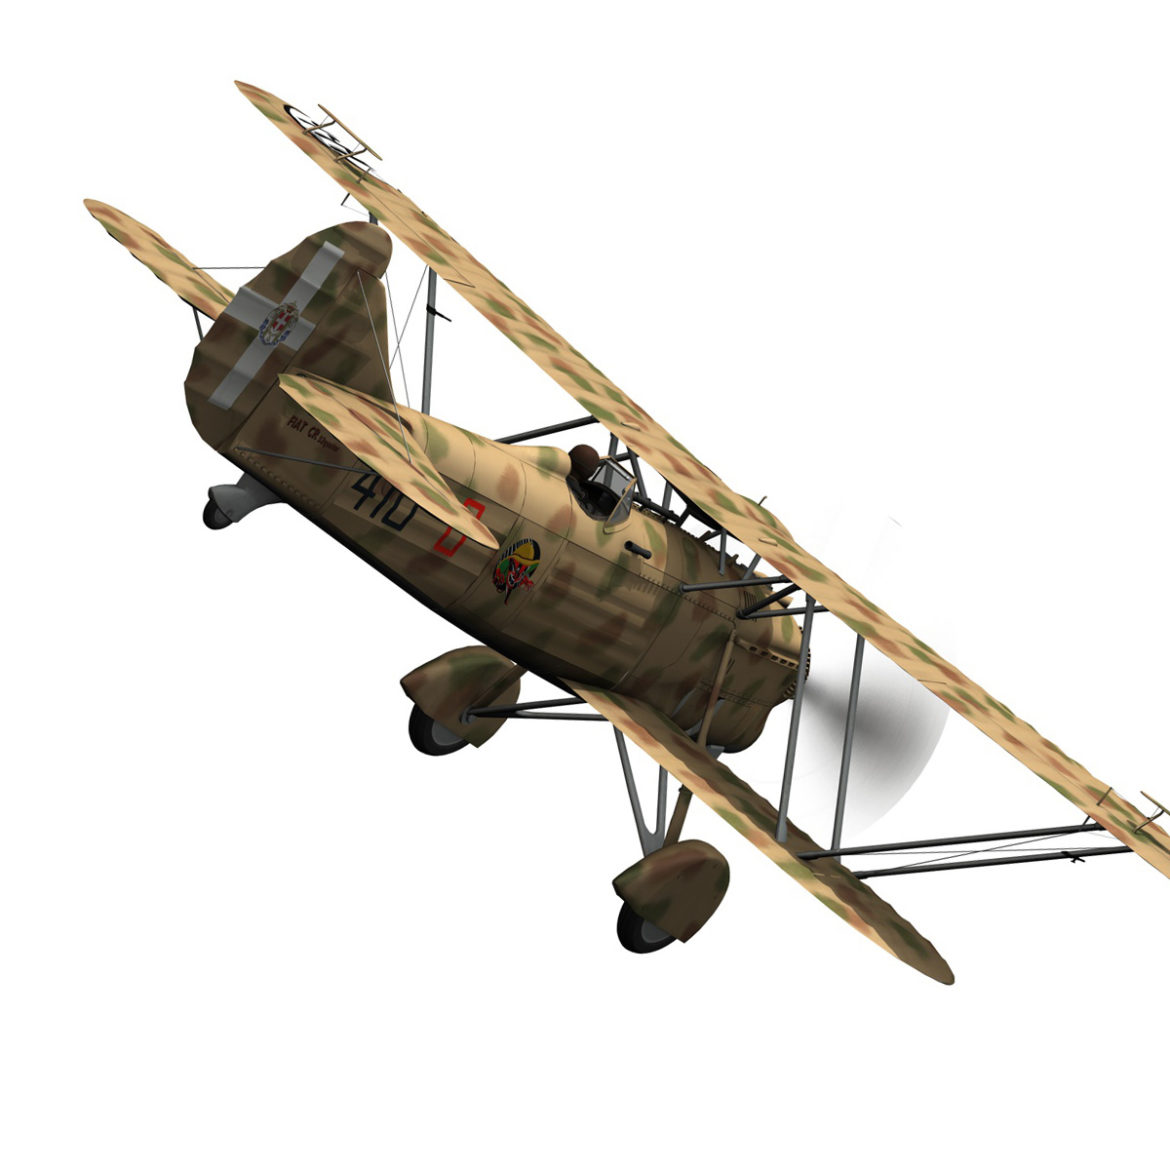 fiat cr.32 – italy airforce – 410 squadriglia 3d model fbx c4d lwo obj 307546